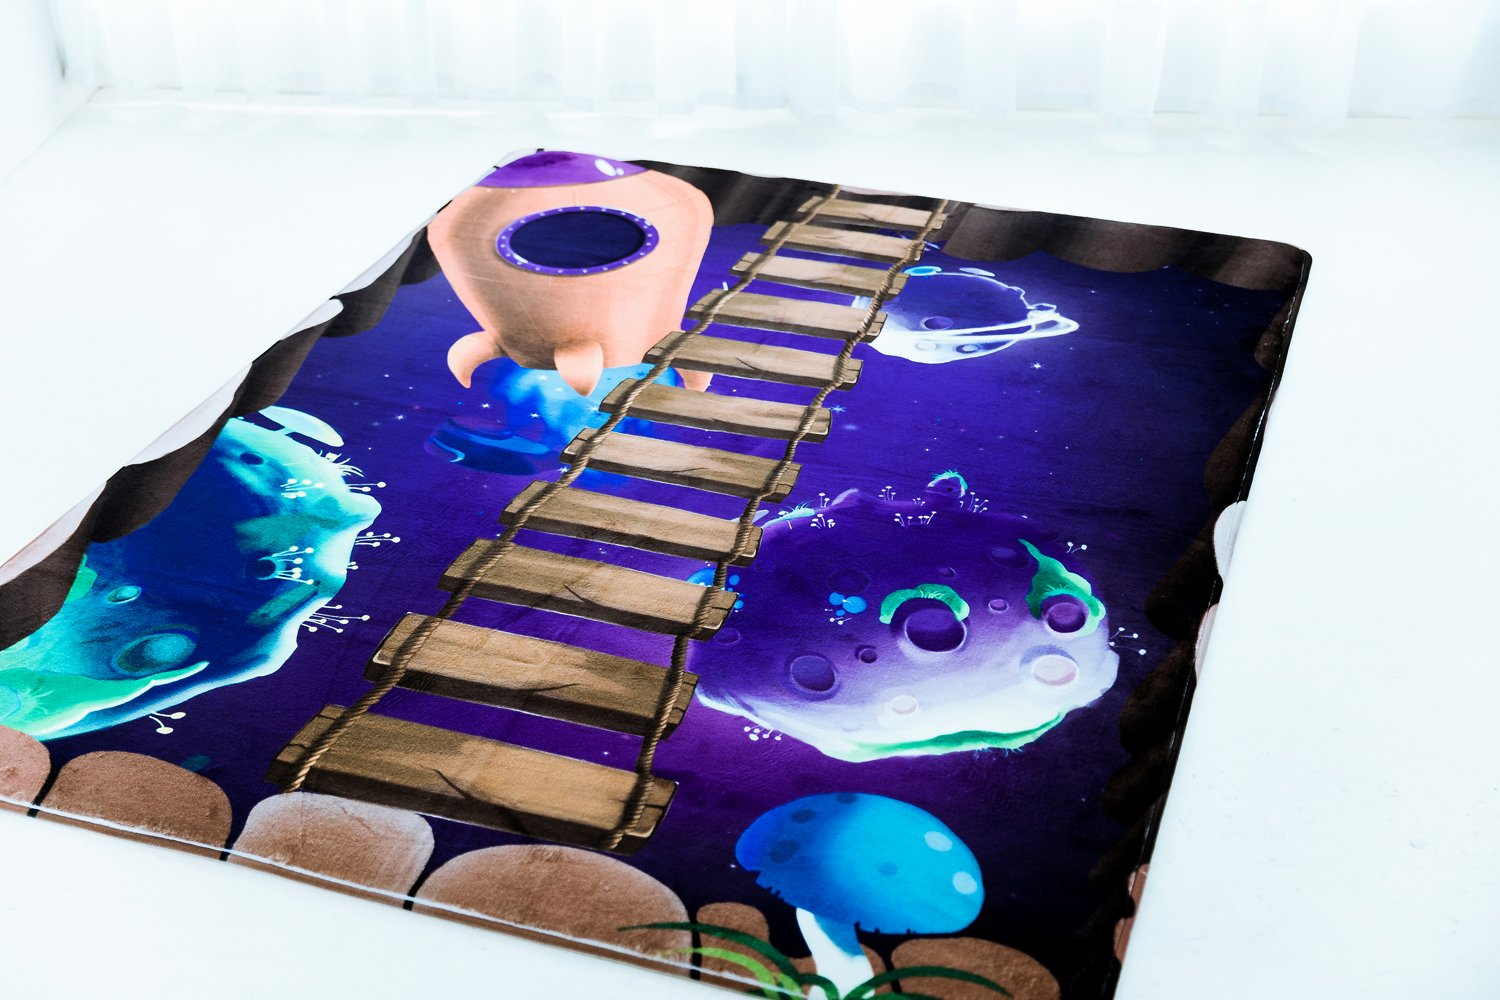 Cloudyfocus Baby Crawling Mat - 6.5' x 5', 3D Nursery Decor Rug for Kids Play, Non Slip Shaggy Area Rug Soft Baby Gym Carpet Sleep Blanket Baby Shower Gift (Adventure in Space) by CloudyFocus